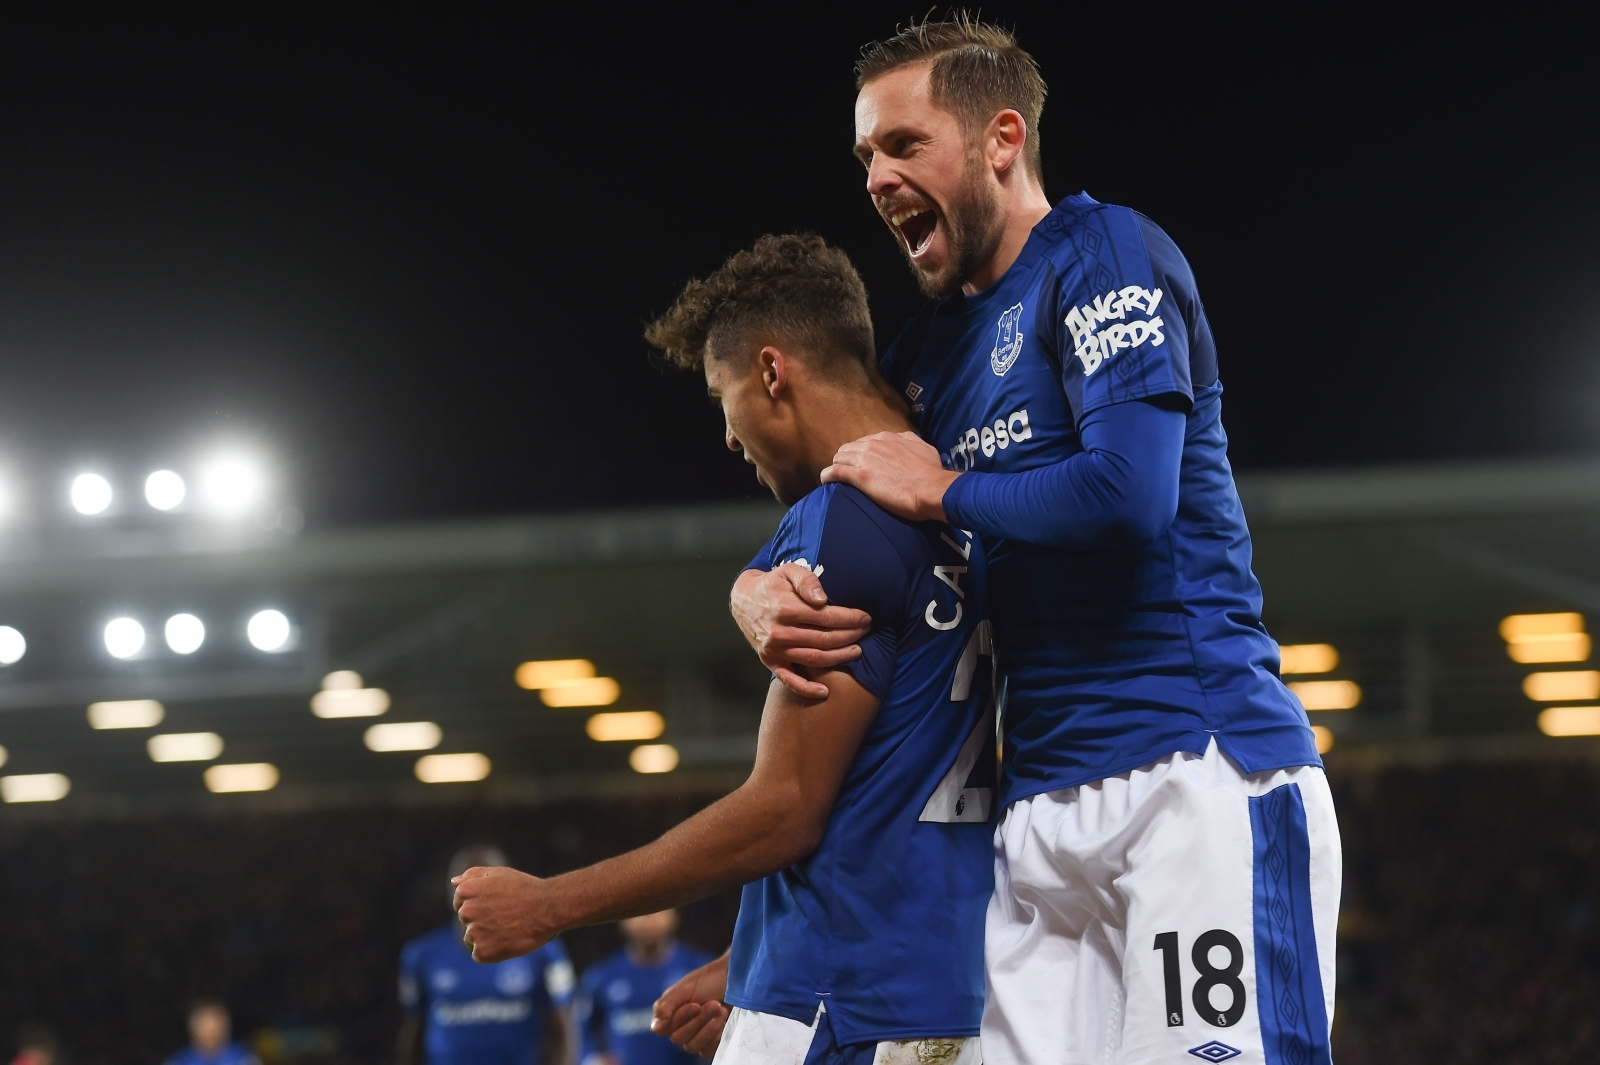 Dominic Calvert-Lewin and Gylfi Sigurdsson